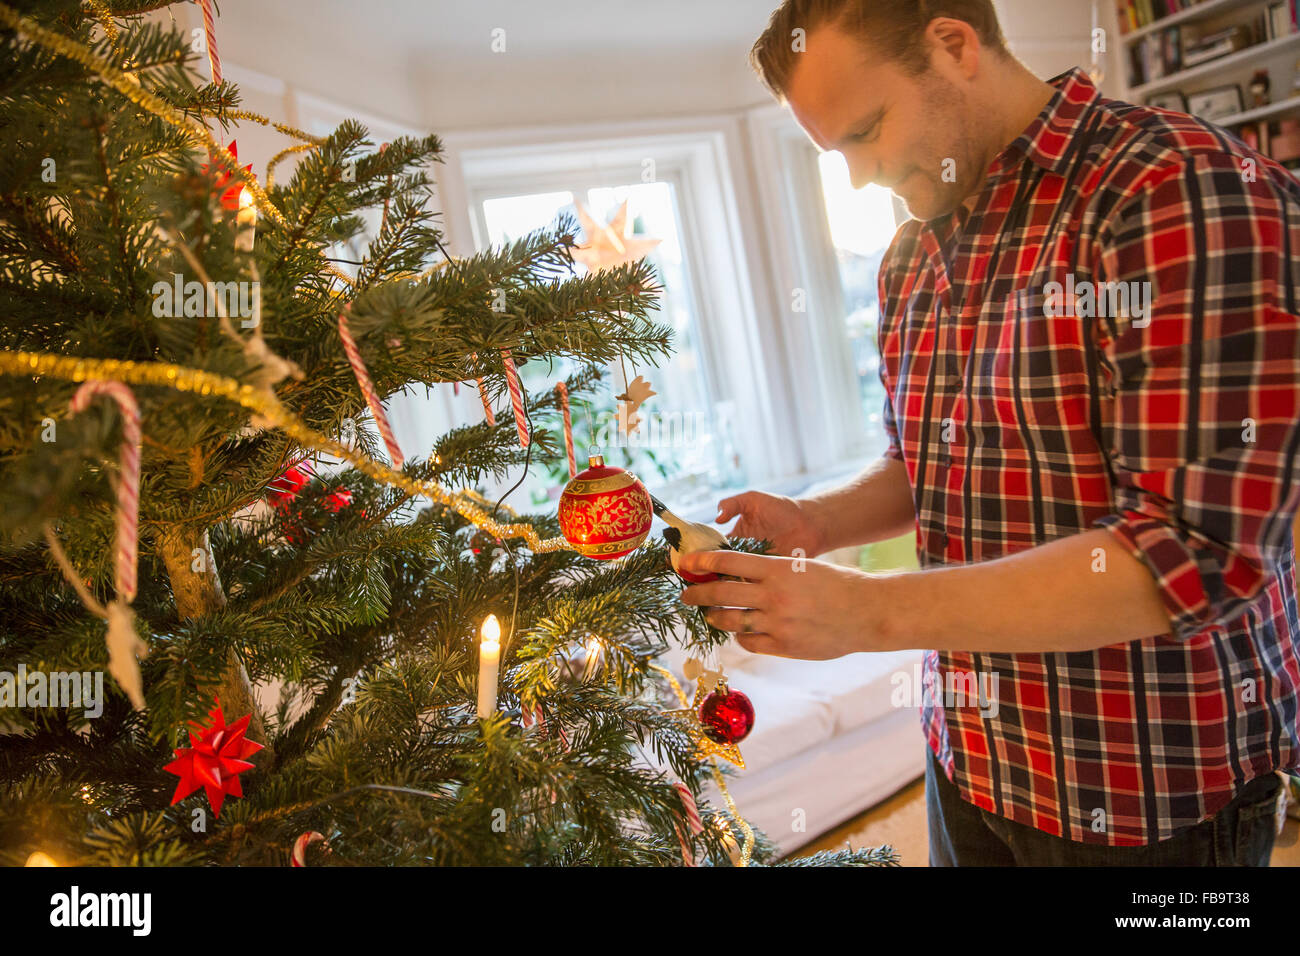 Sweden, Man Decorating Christmas Tree At Home Stock Photo